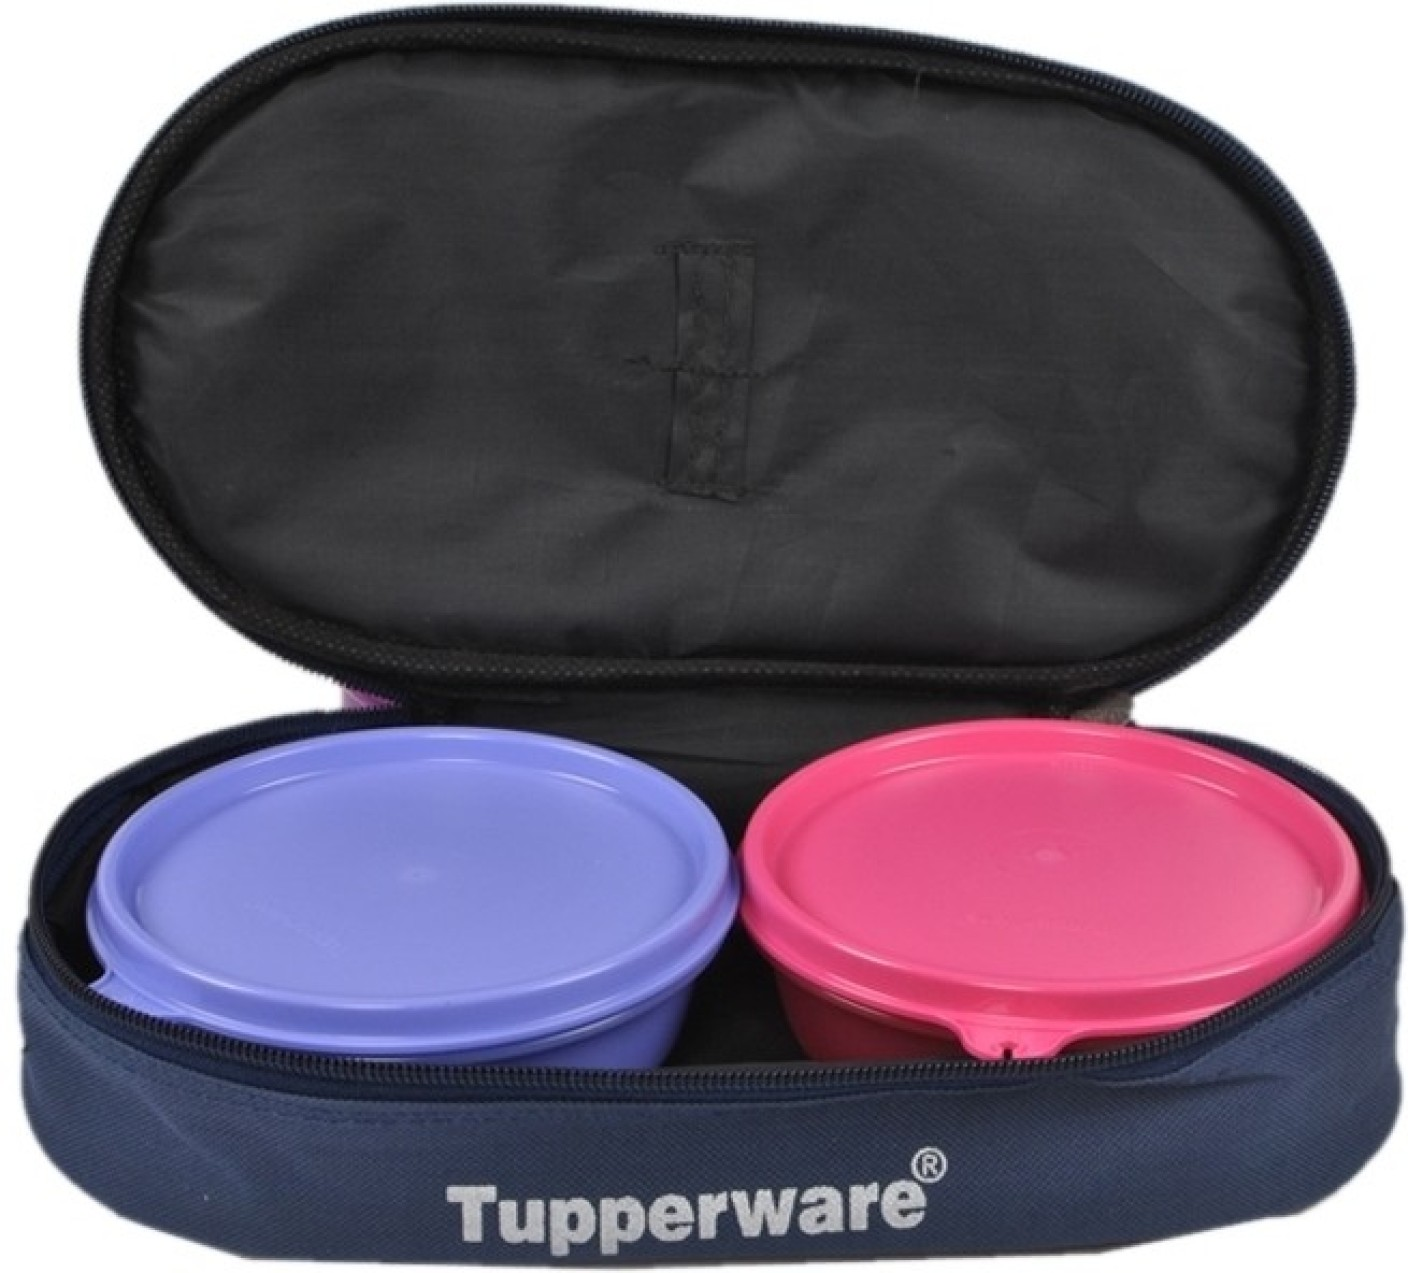 tupperware buddy 2 containers lunch box. Black Bedroom Furniture Sets. Home Design Ideas